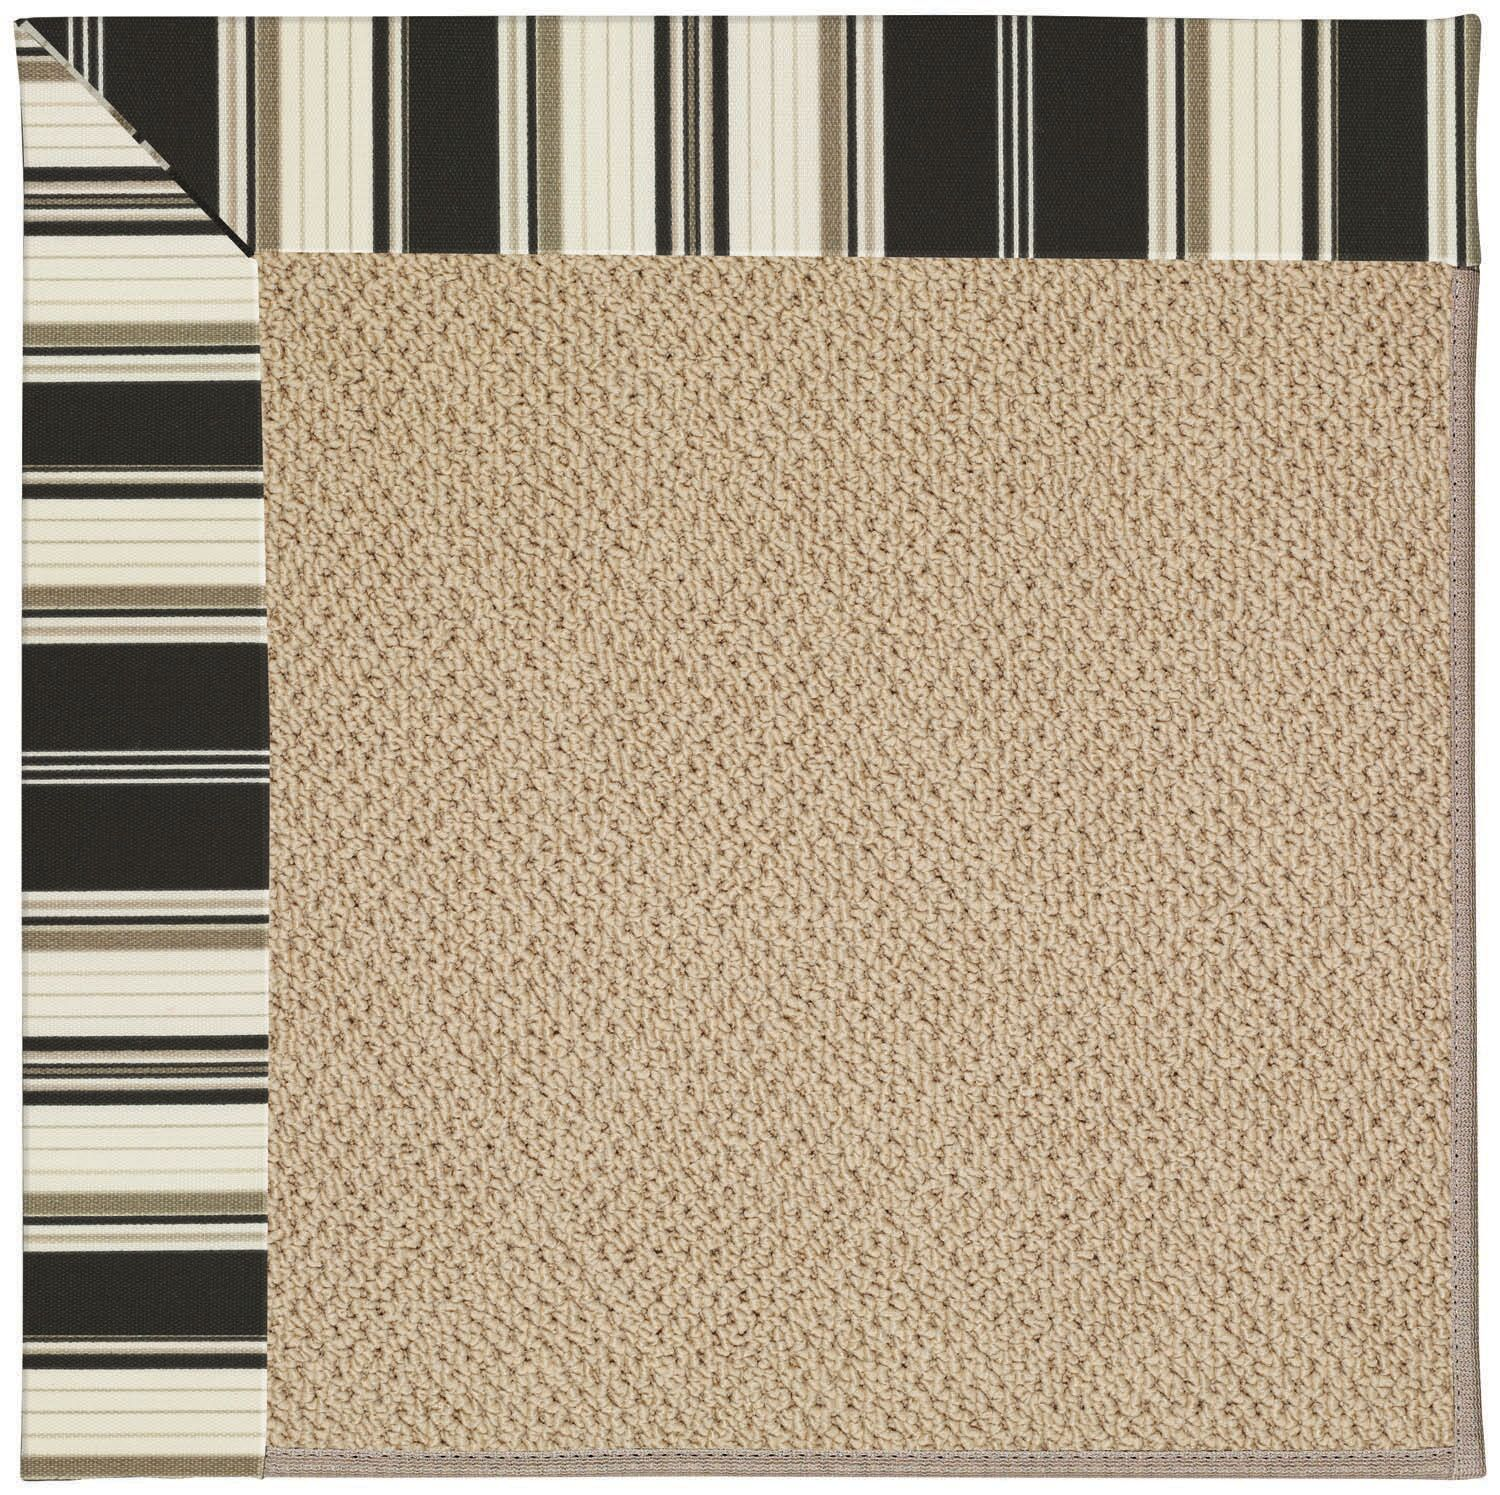 Lisle Machine Tufted Onyx/Brown Indoor/Outdoor Area Rug Rug Size: Rectangle 12' x 15'